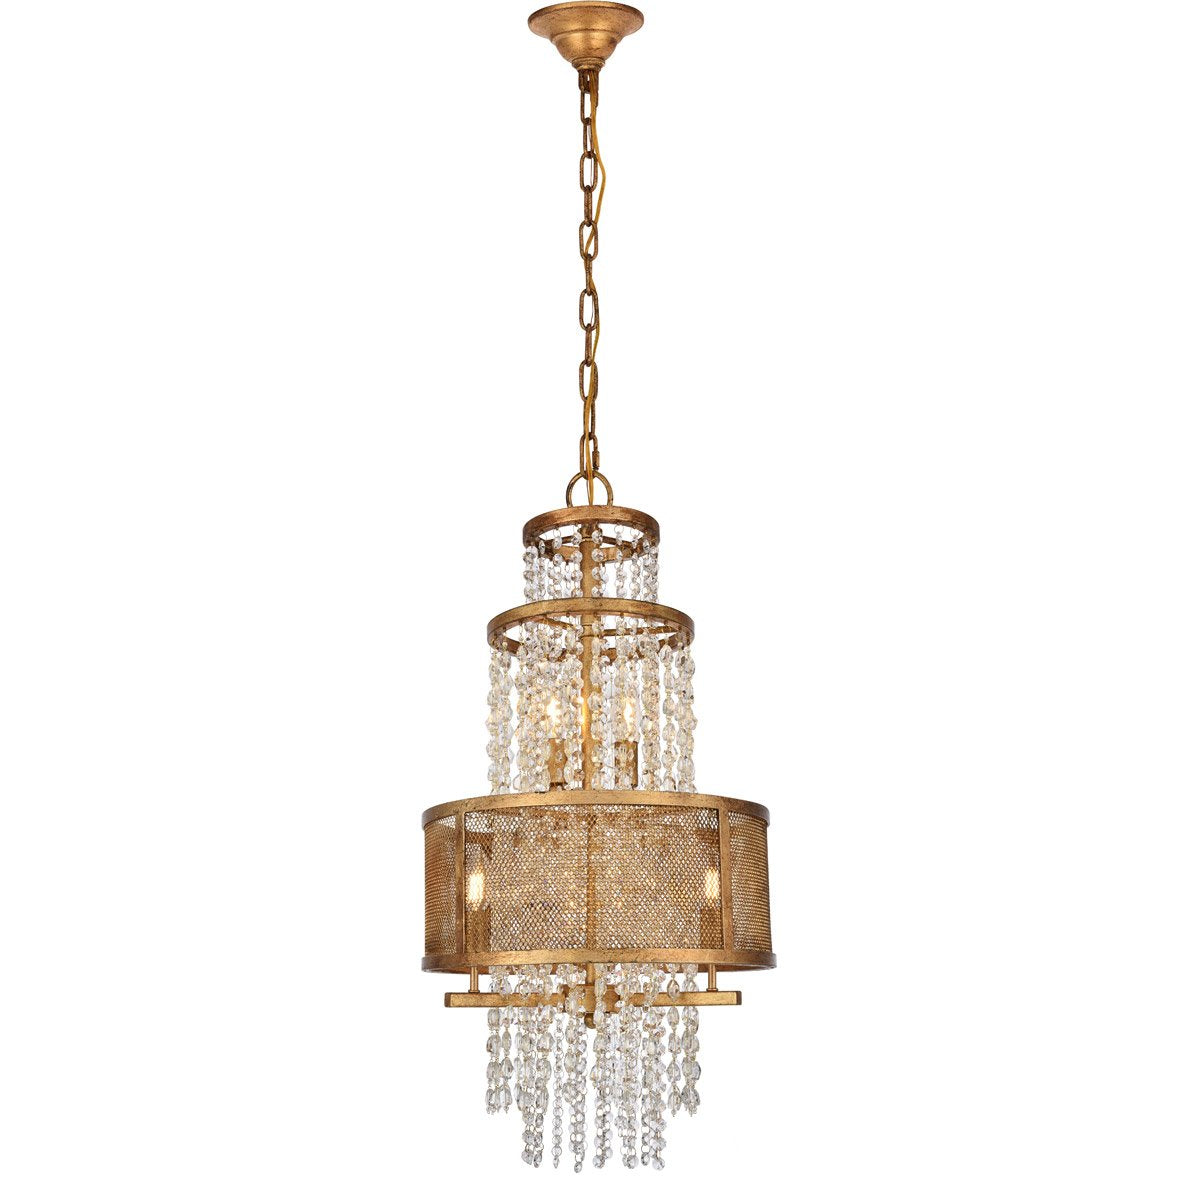 Legacy 16 Pendant Chandelier With 5 Lights - Golden Iron Finish Chandelier